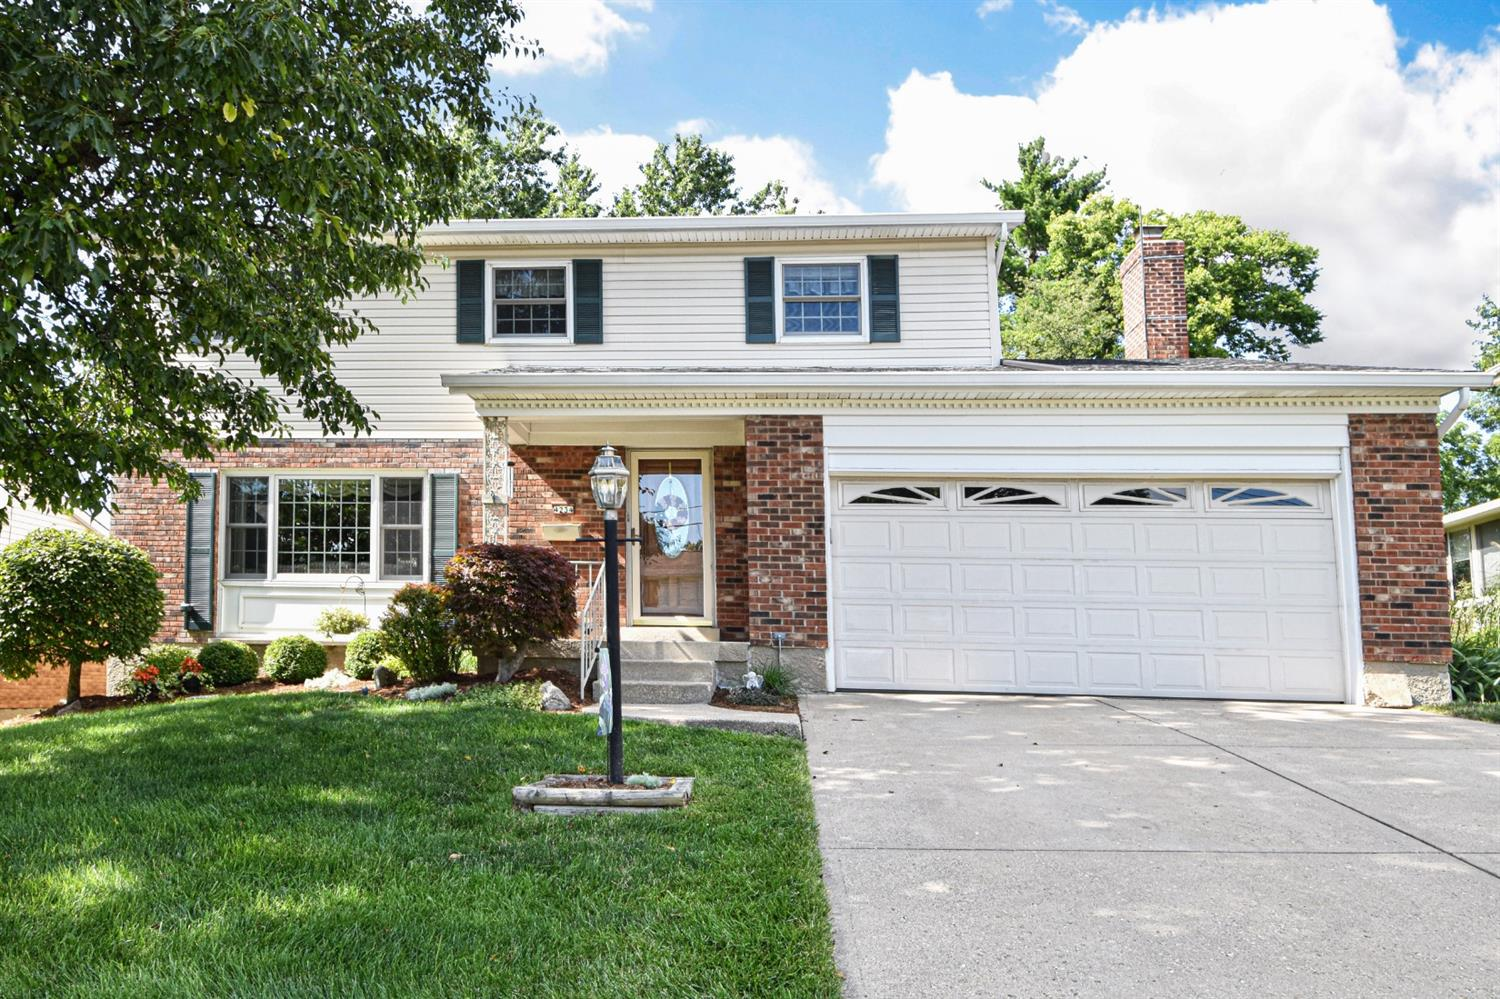 Photo 1 for 4234 Turf Ln Green Twp. - Hamilton Co., OH 45211